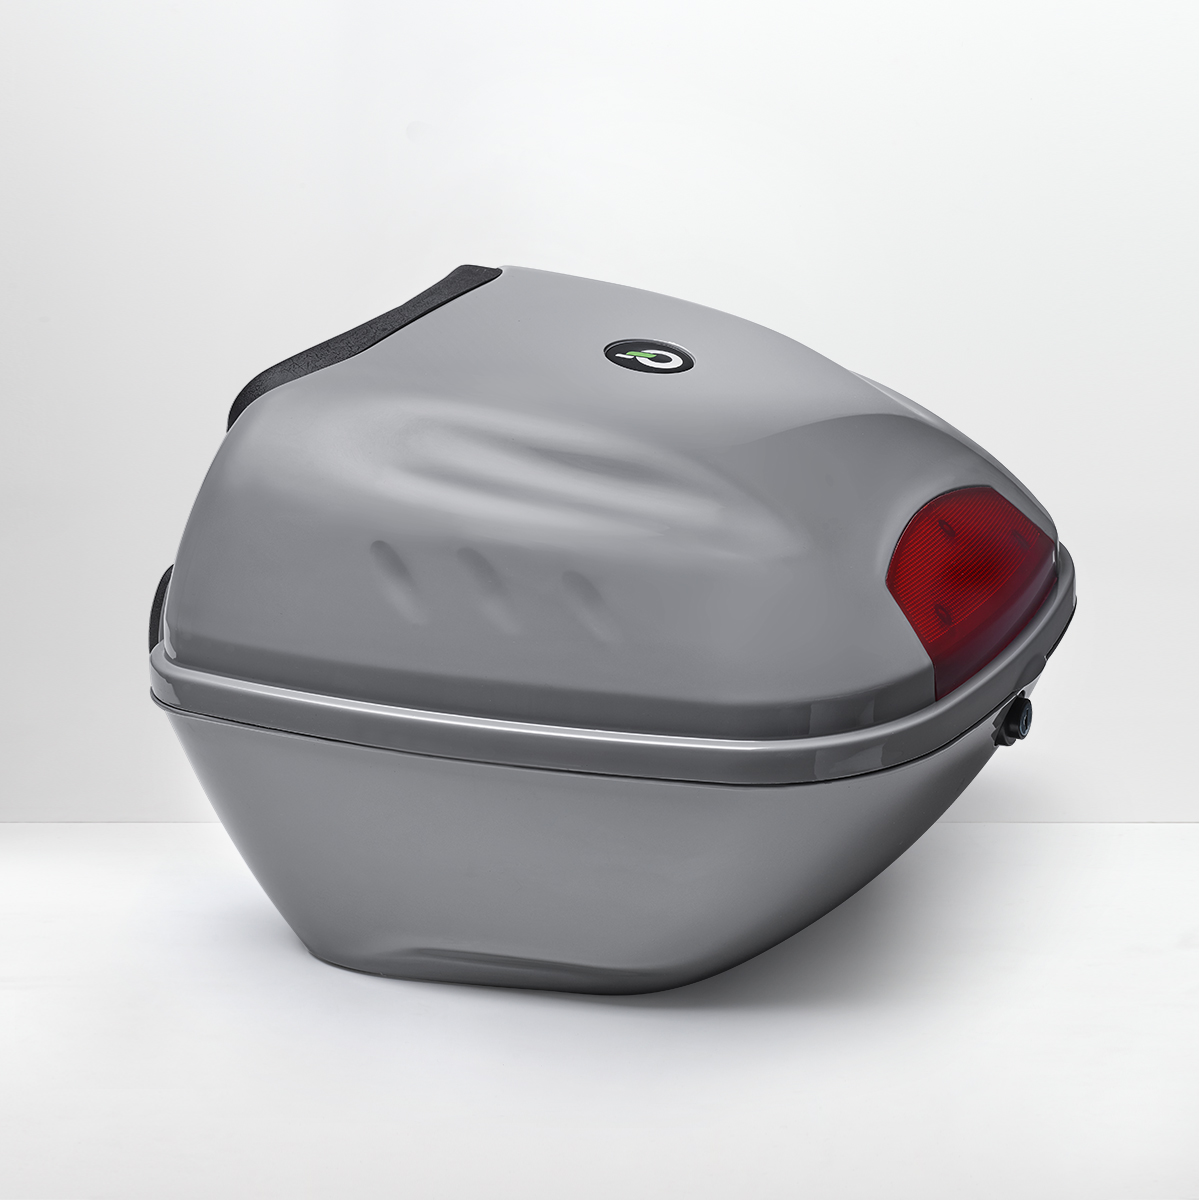 tilscoot-r-gris-euroscoot-topcase